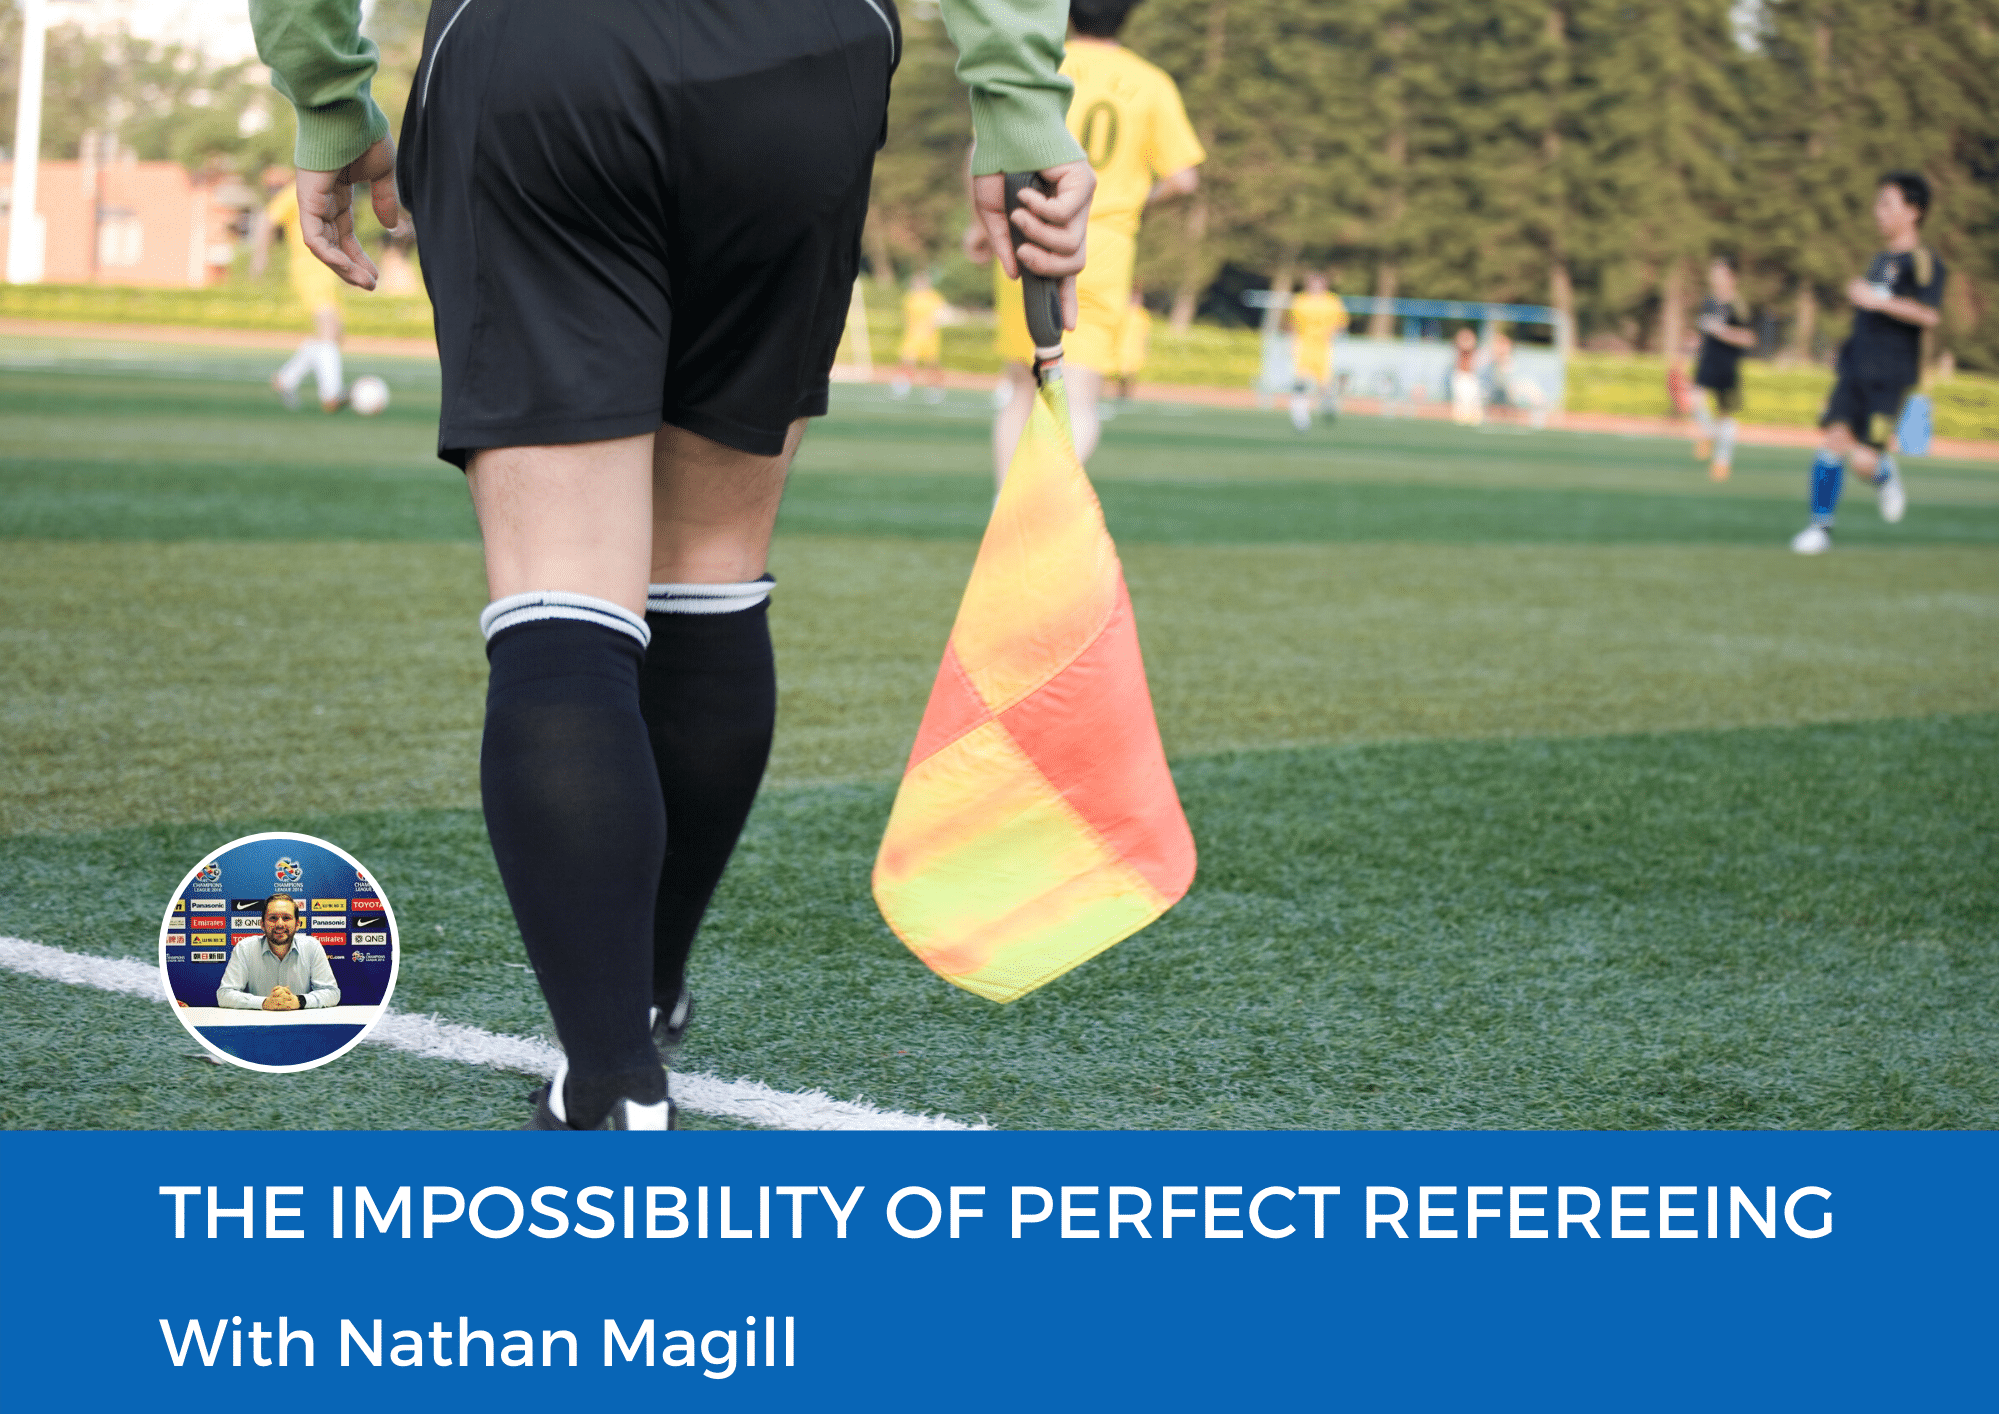 The Impossibility of Perfect Refereeing